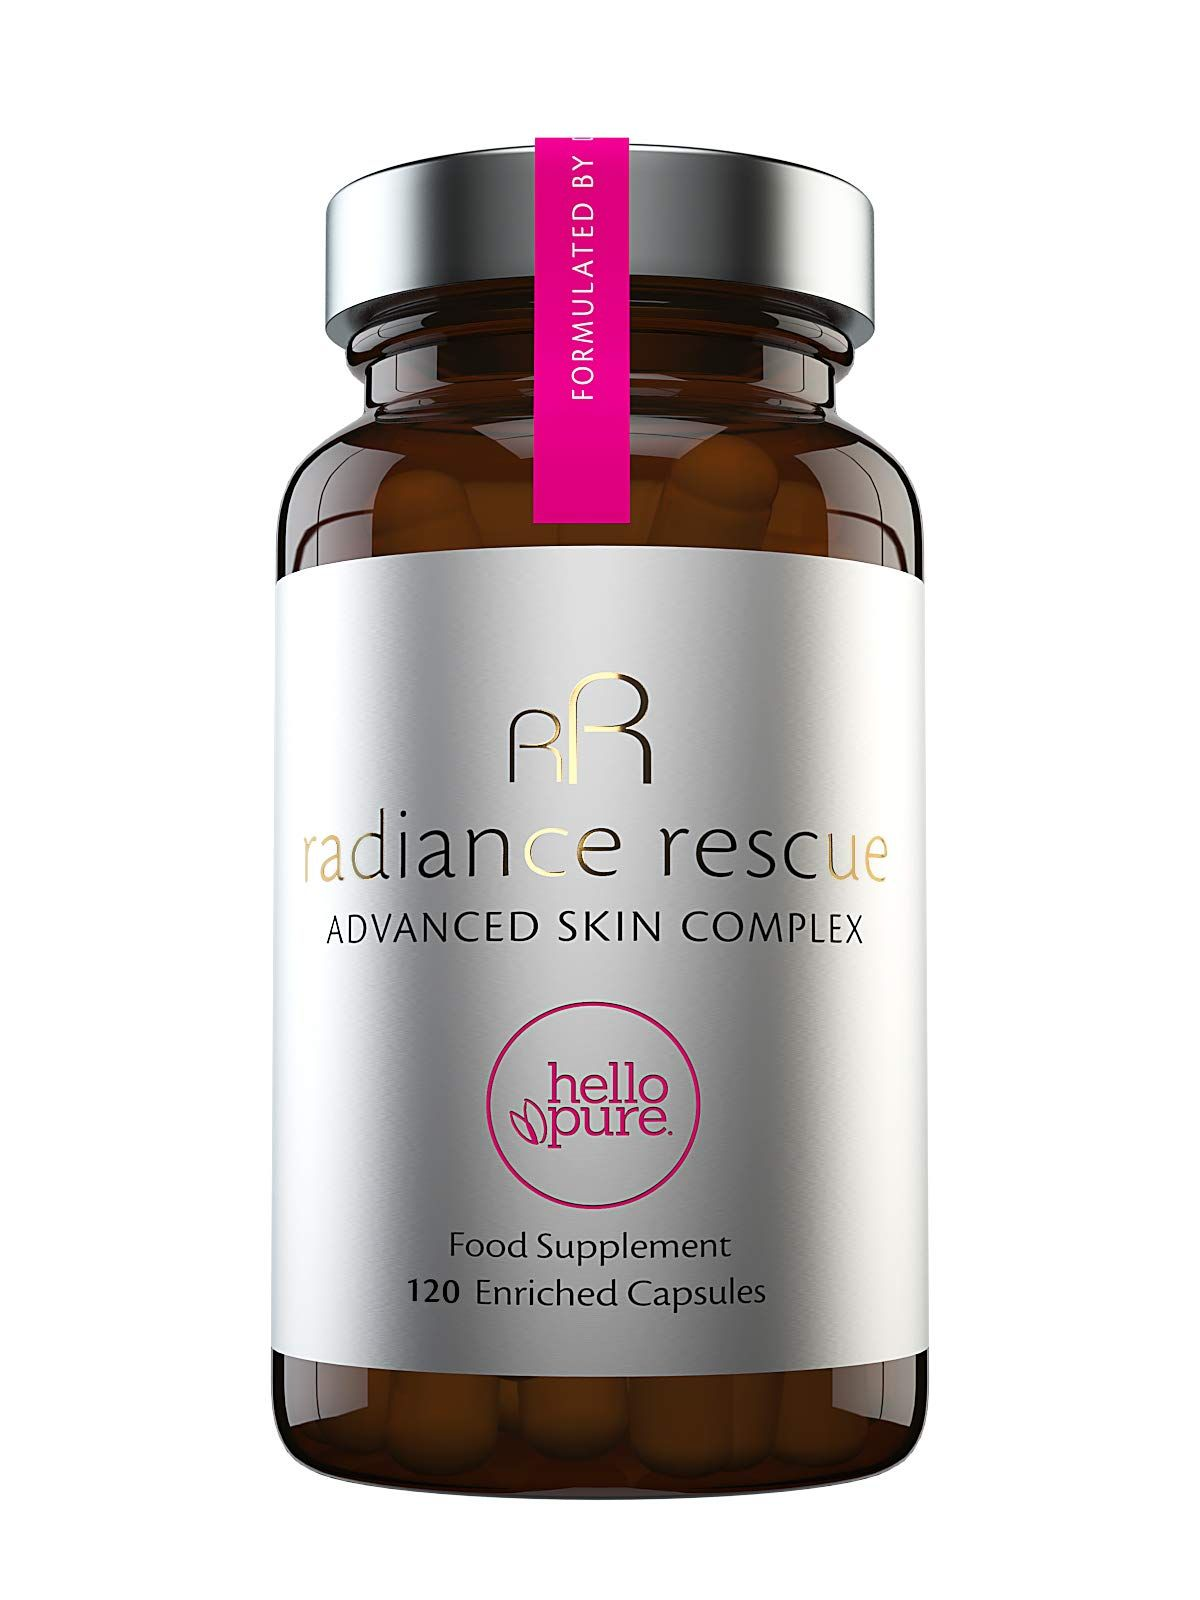 OPTIMUM POTENCY Pure collagen is essential for skin